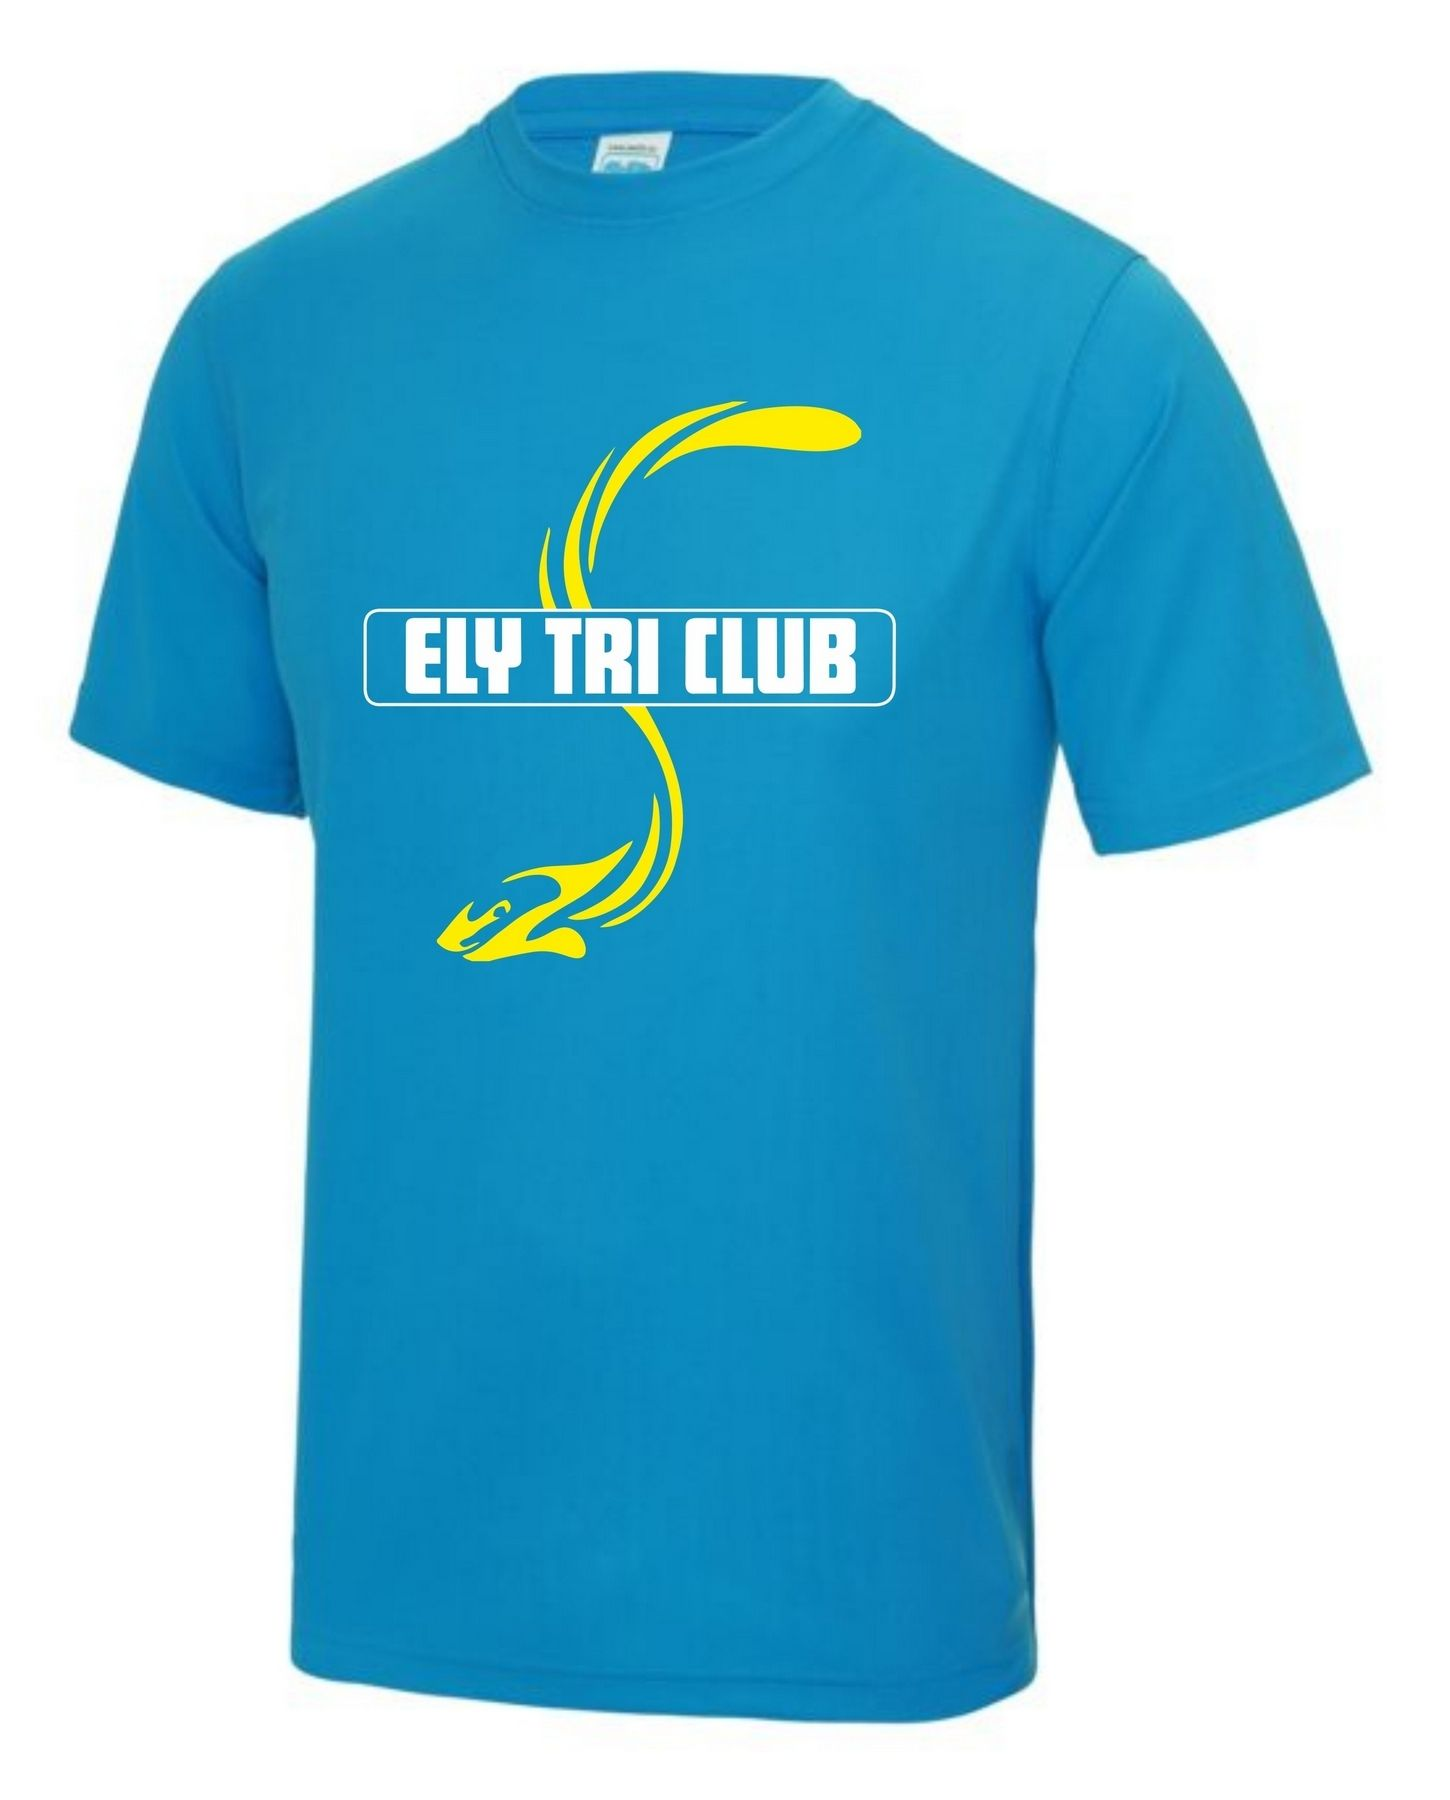 Ely Tri Club – Performance Tee